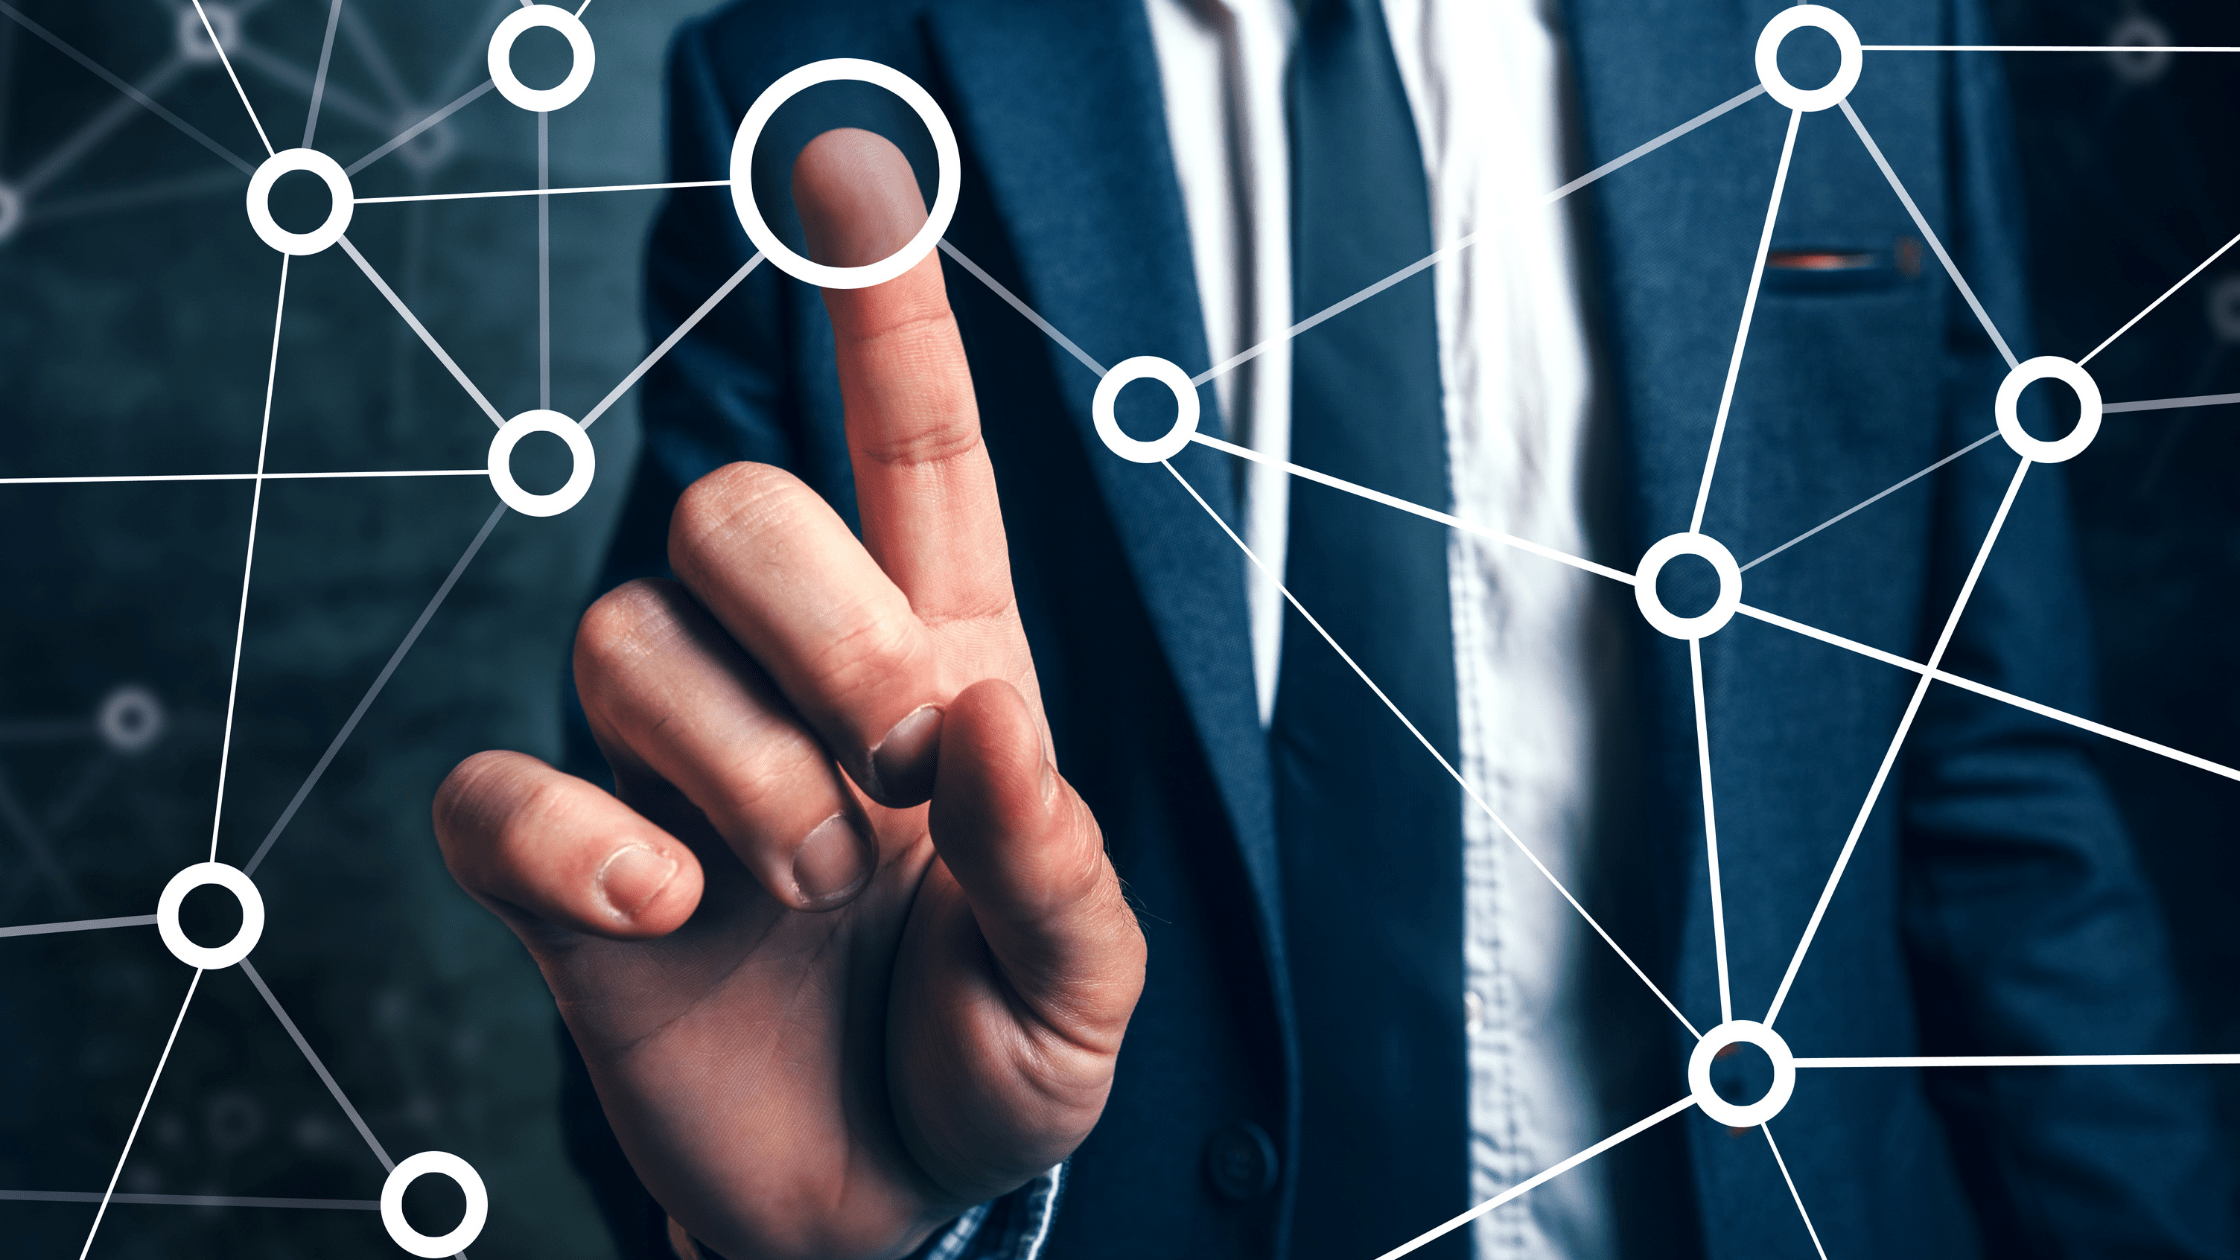 Omnichannel Marketing: Why Connected Channels Bare Better Experiences